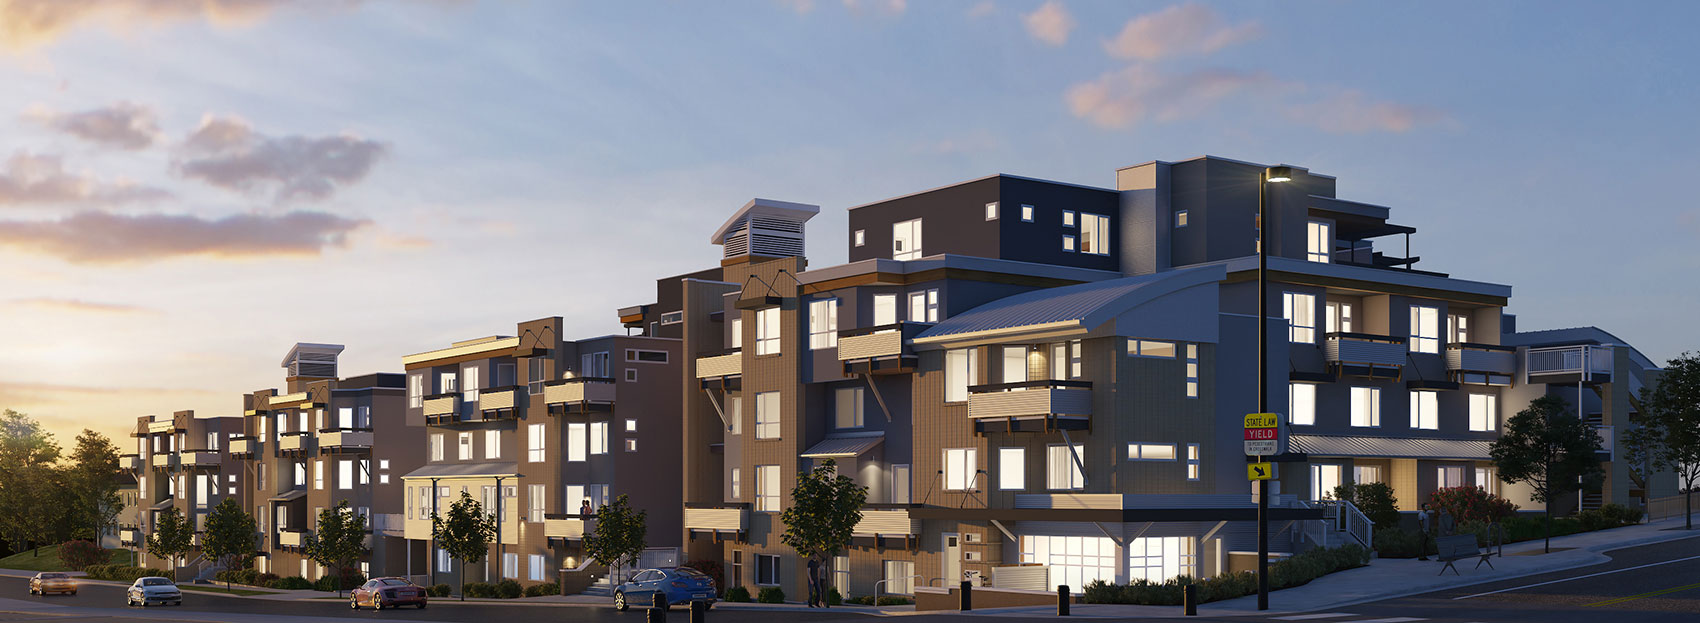 Multifamily project designed by KGA Studio Architects